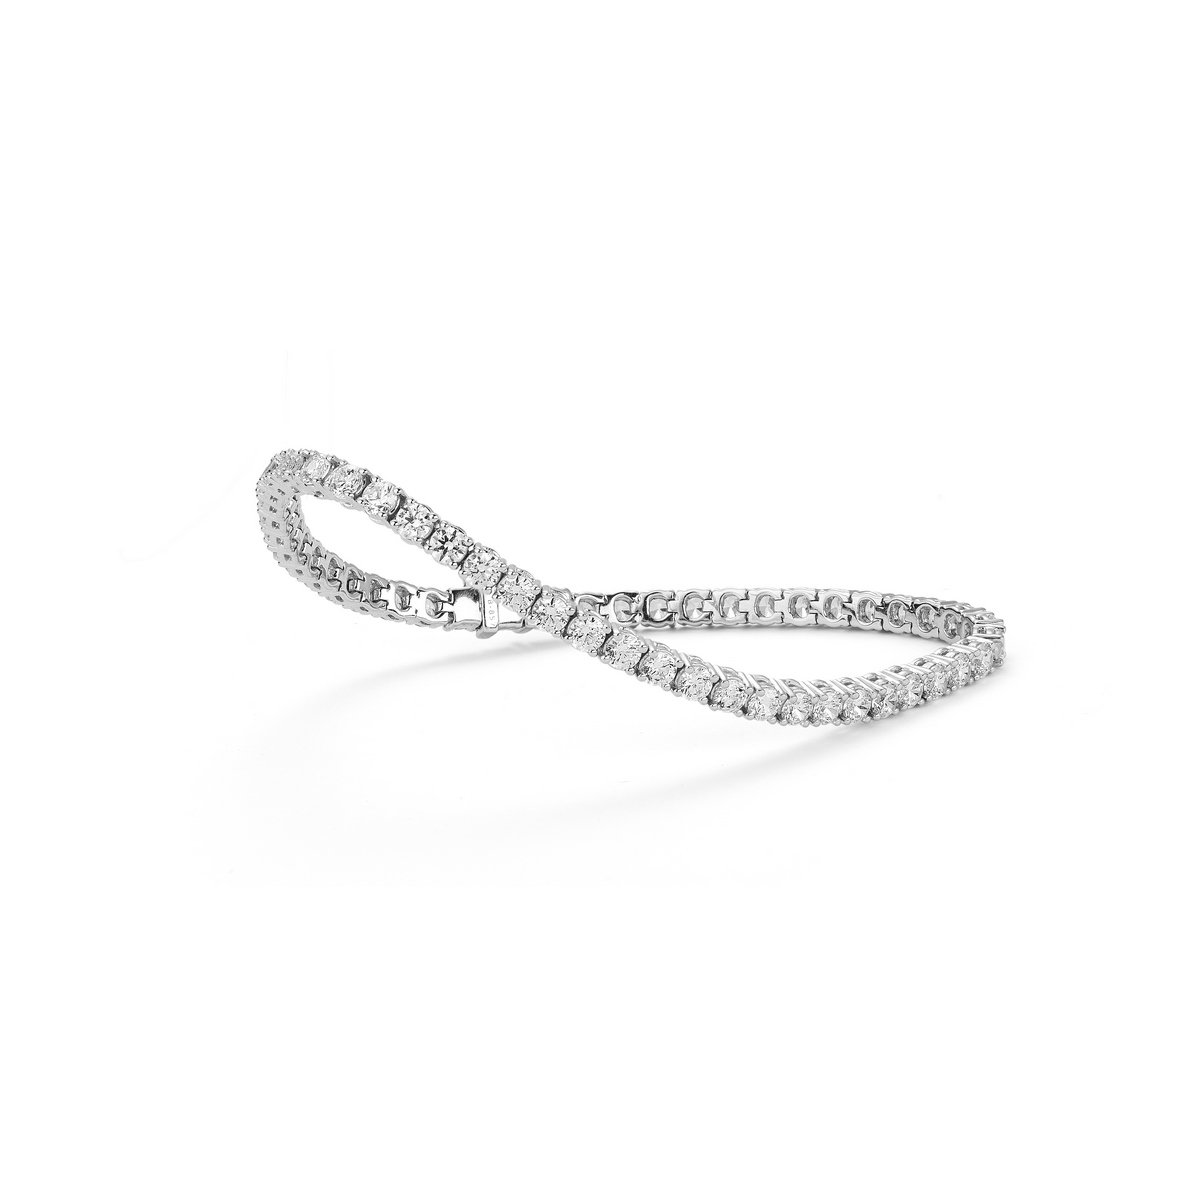 Bracelet en or blanc et diamants de 5cts